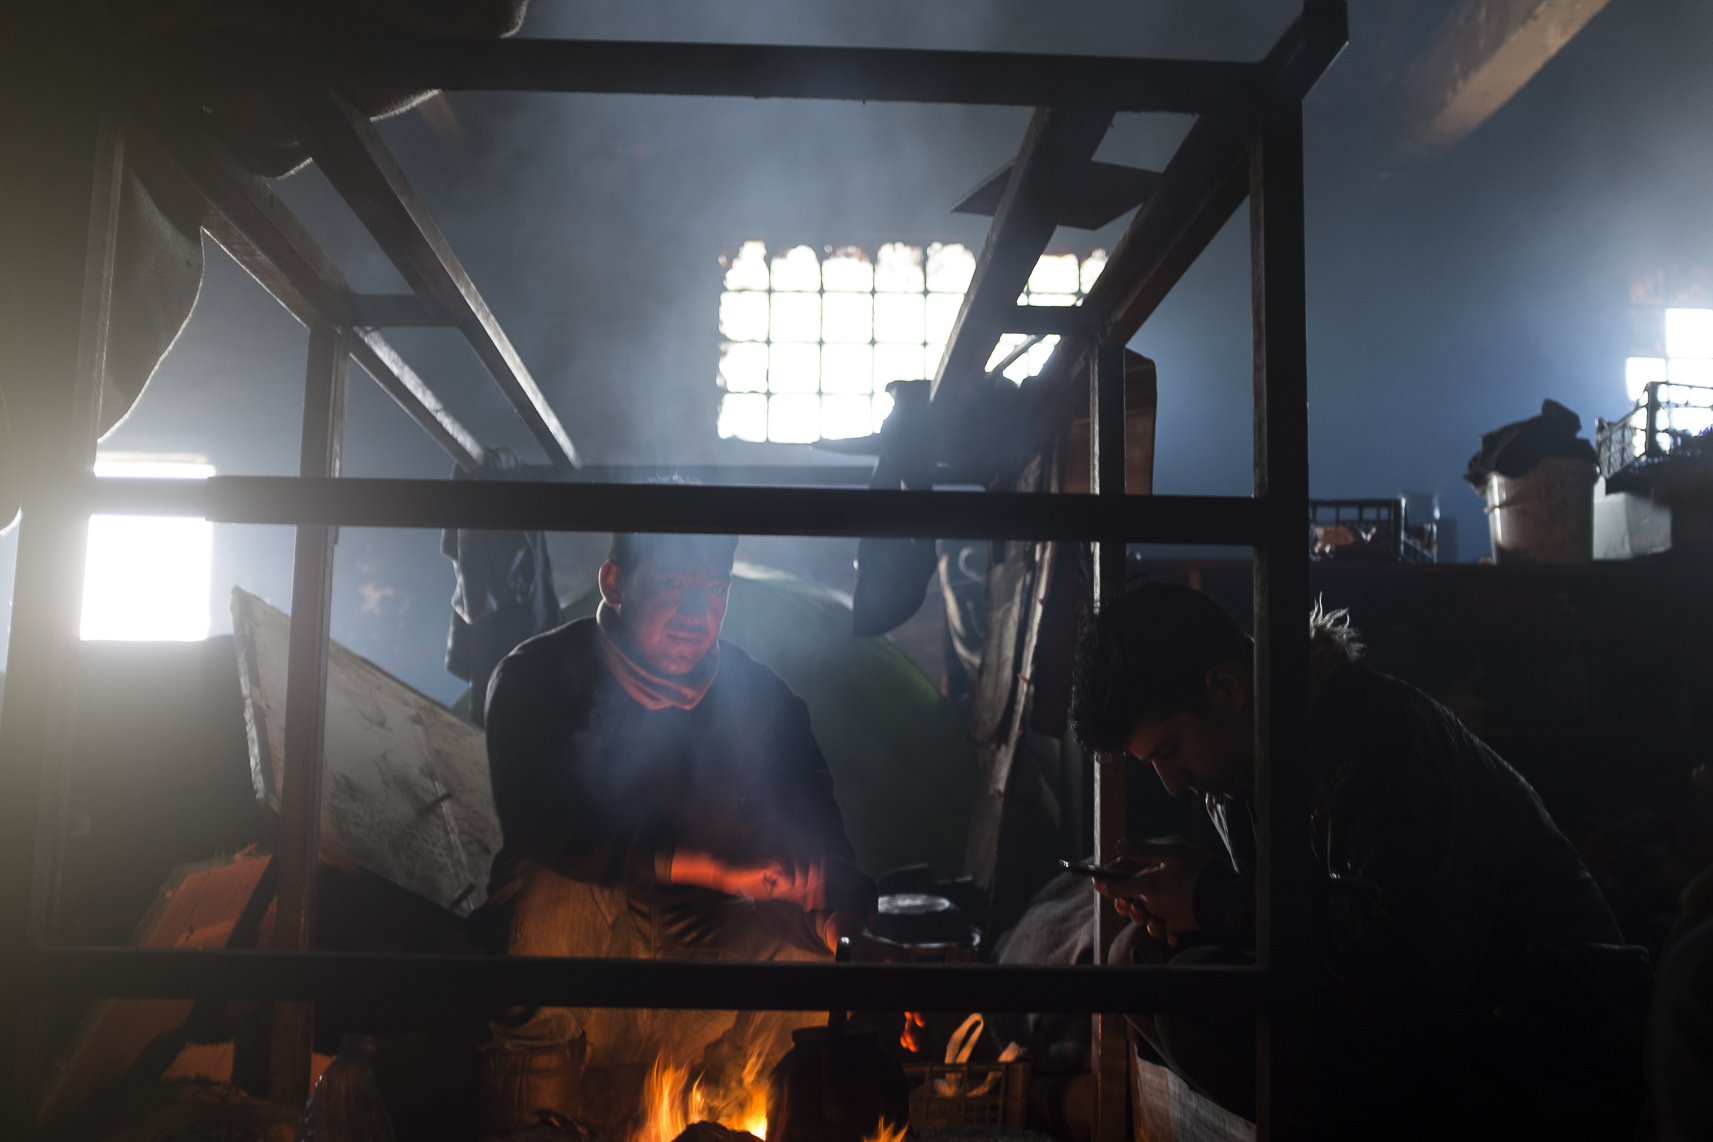 A migrant looks on while he and another cook lunch inside an abandoned warehouse where they took shelter in Belgrade, Serbia. February 15, 2107.